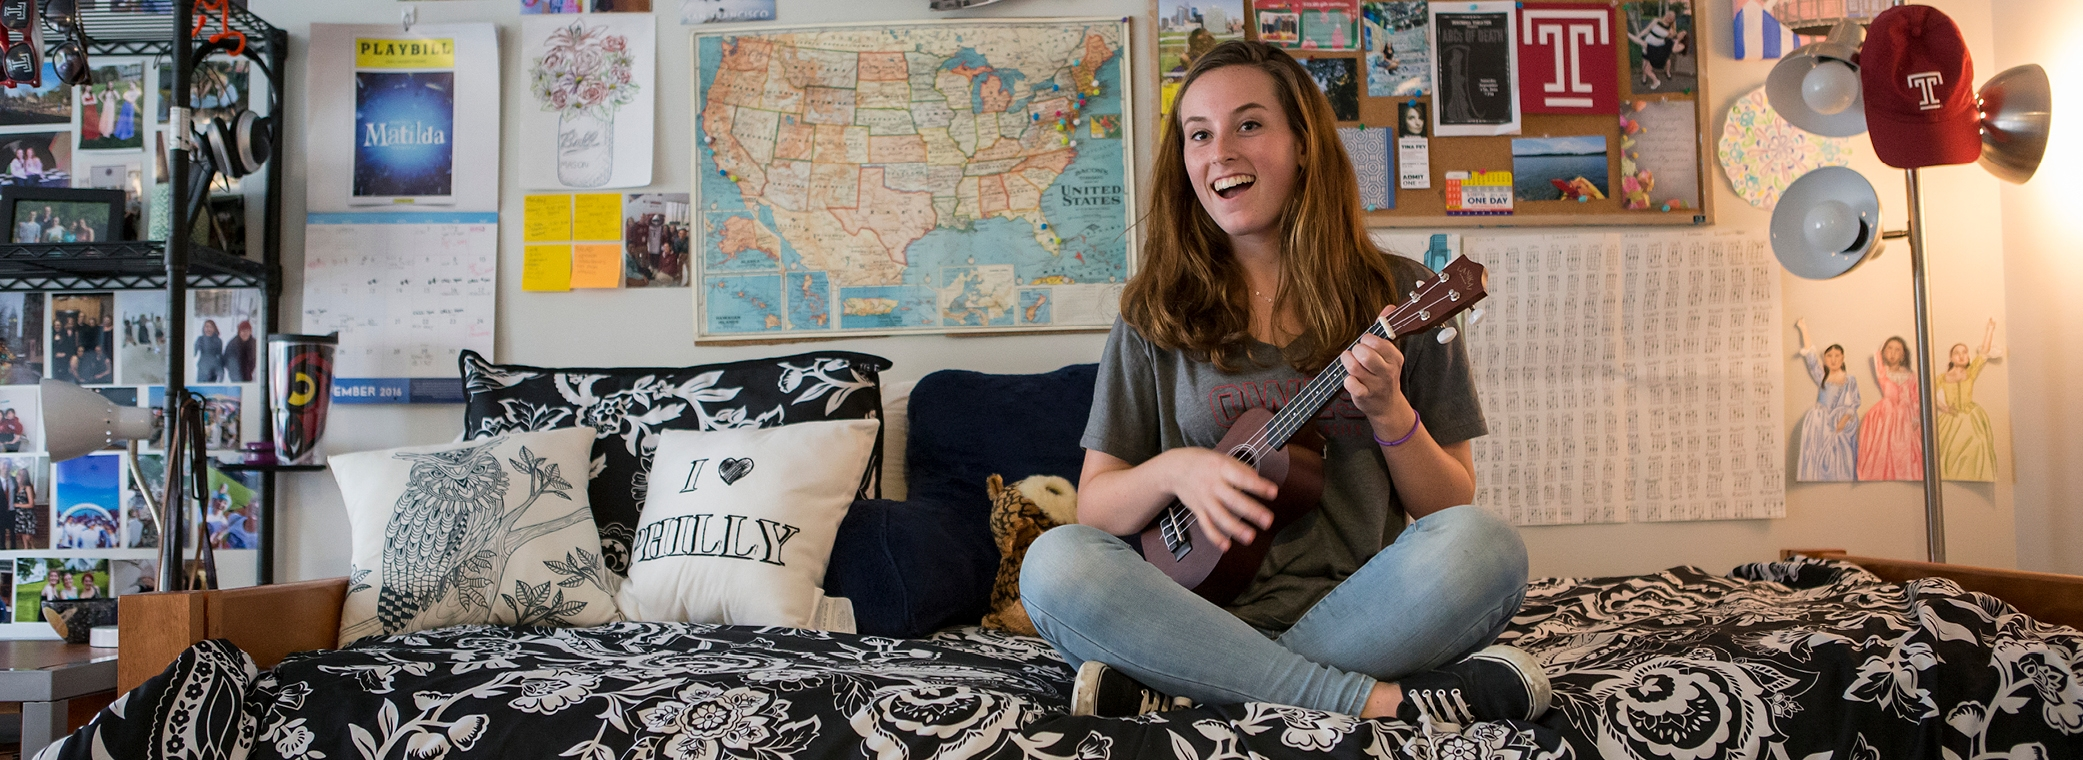 Female Temple student on her bed in her room playing a guitar